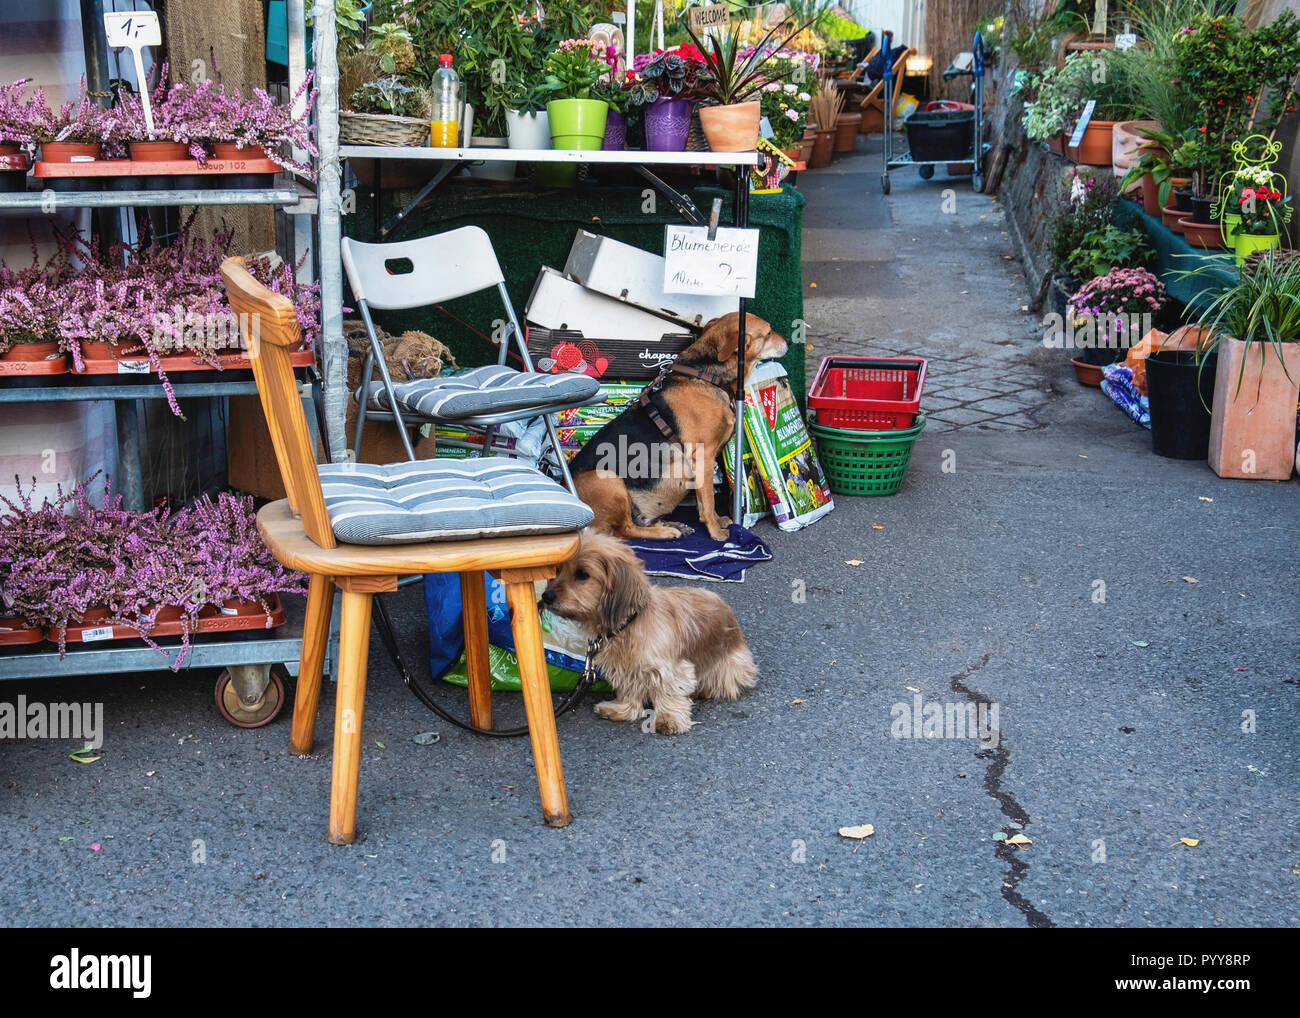 Germany,Berlin,Bernauerstrasse. Garden centre at Mauerpark with potted plants and two dogs waiting at entrance - Stock Image